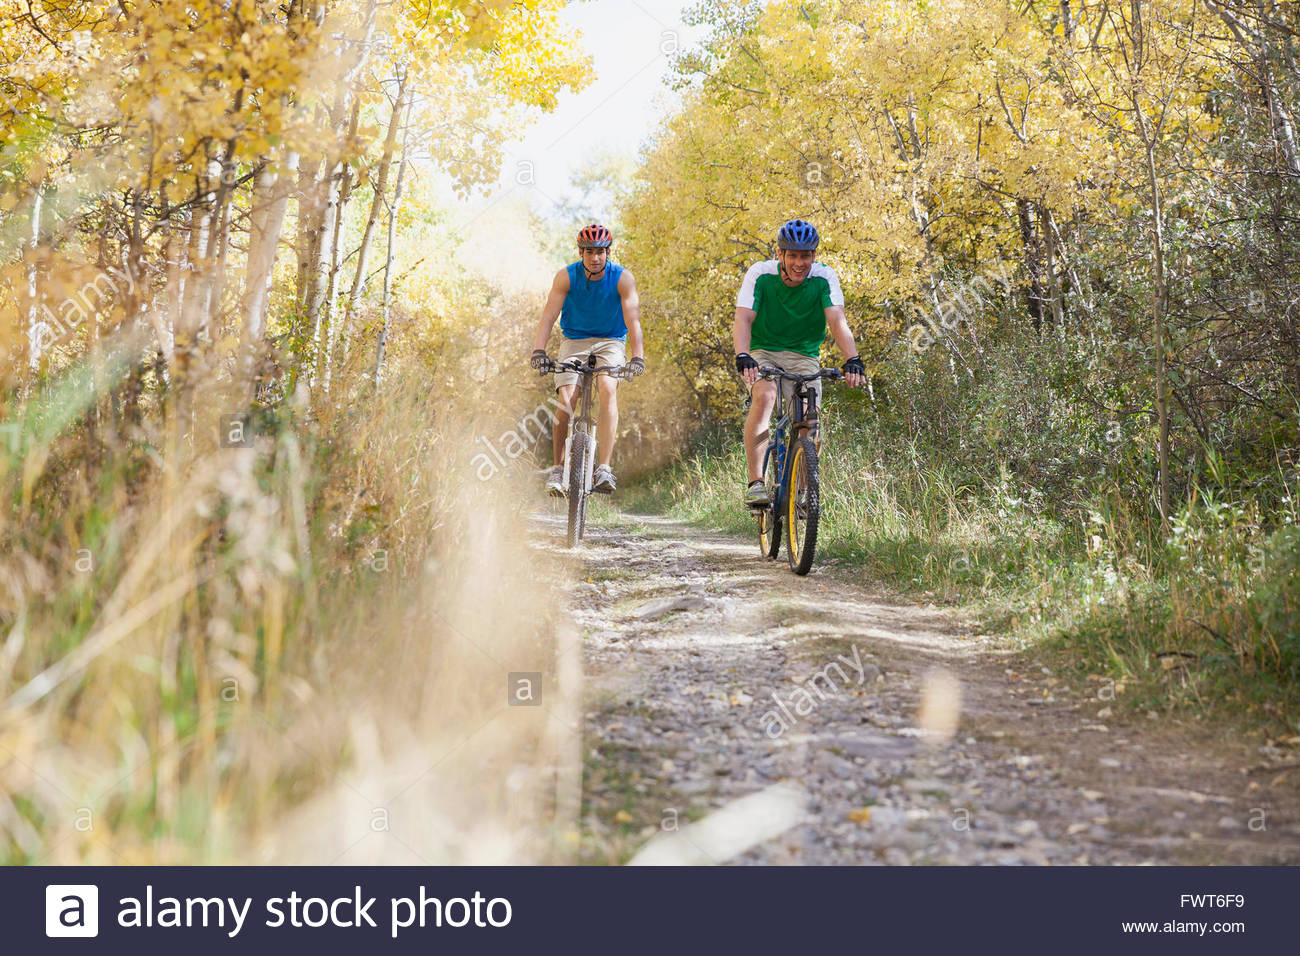 Men racing along path with their mountain bikes. - Stock Image